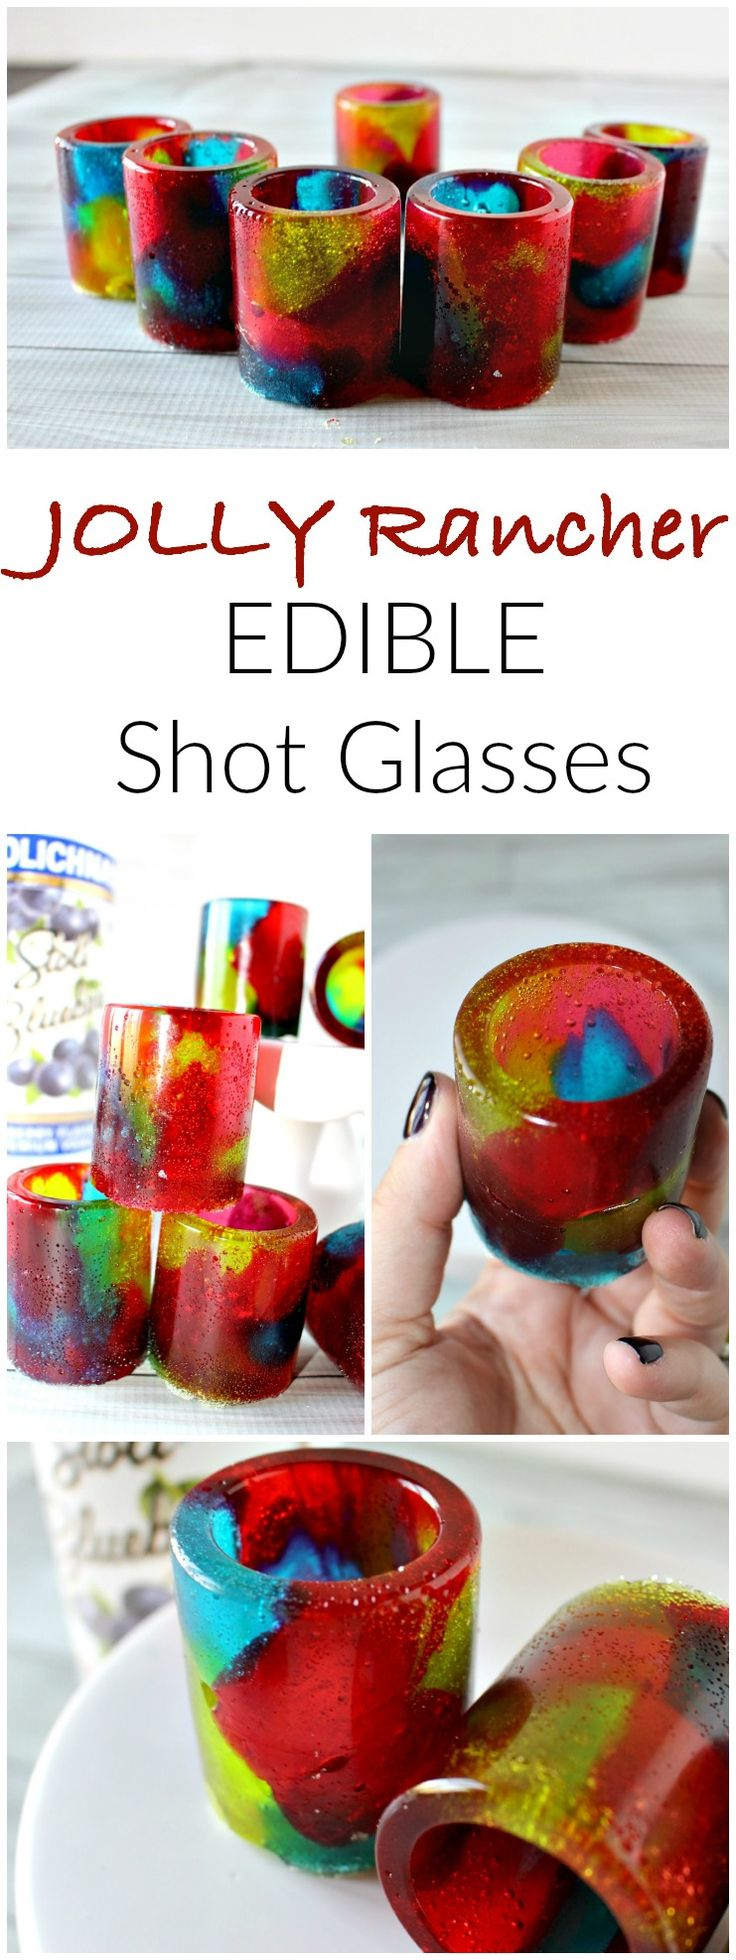 Jolly Rancher EDIBLE Shot Glasses - These are PERFECT for New Year's Eve!! These candy shot glasses will make your next party a huge hit!!